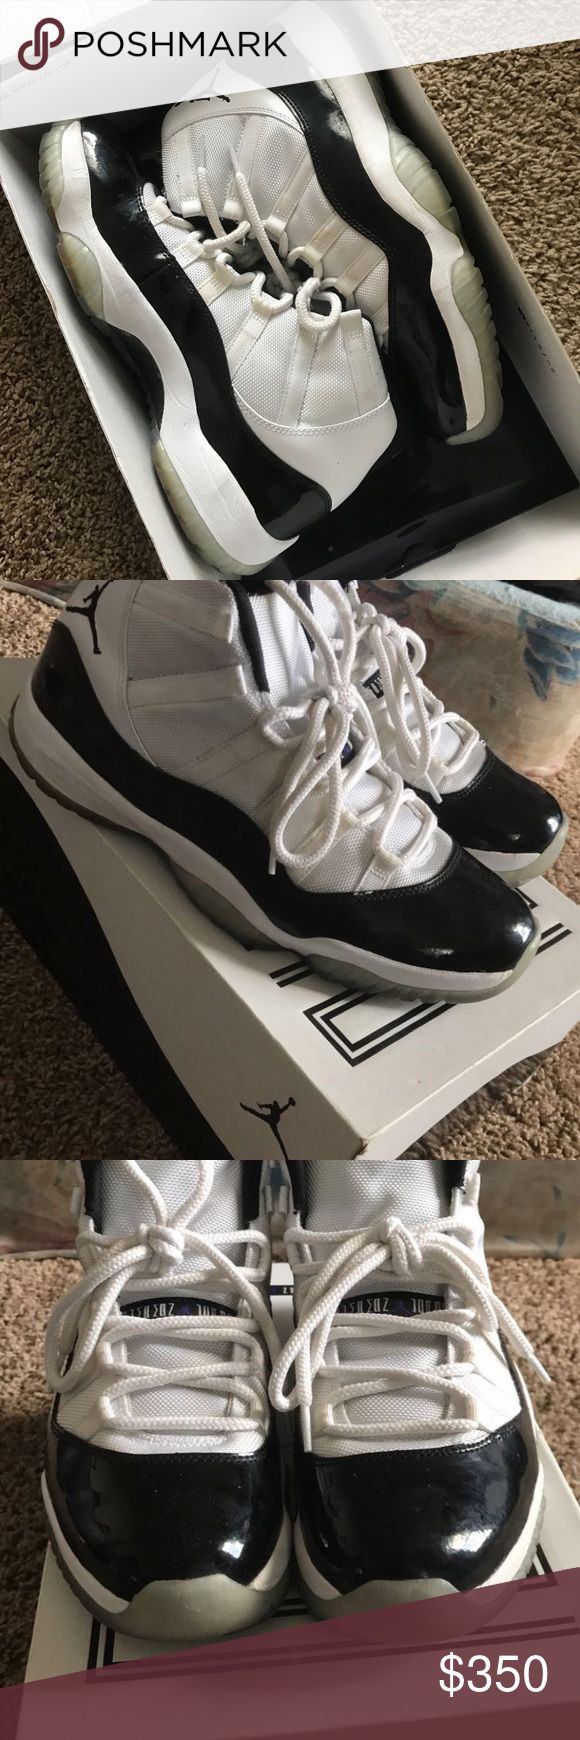 Air Jordan 11 Concords sz 10.5 Great great great condition. Don't sleep! Jordan Shoes Athletic Shoes